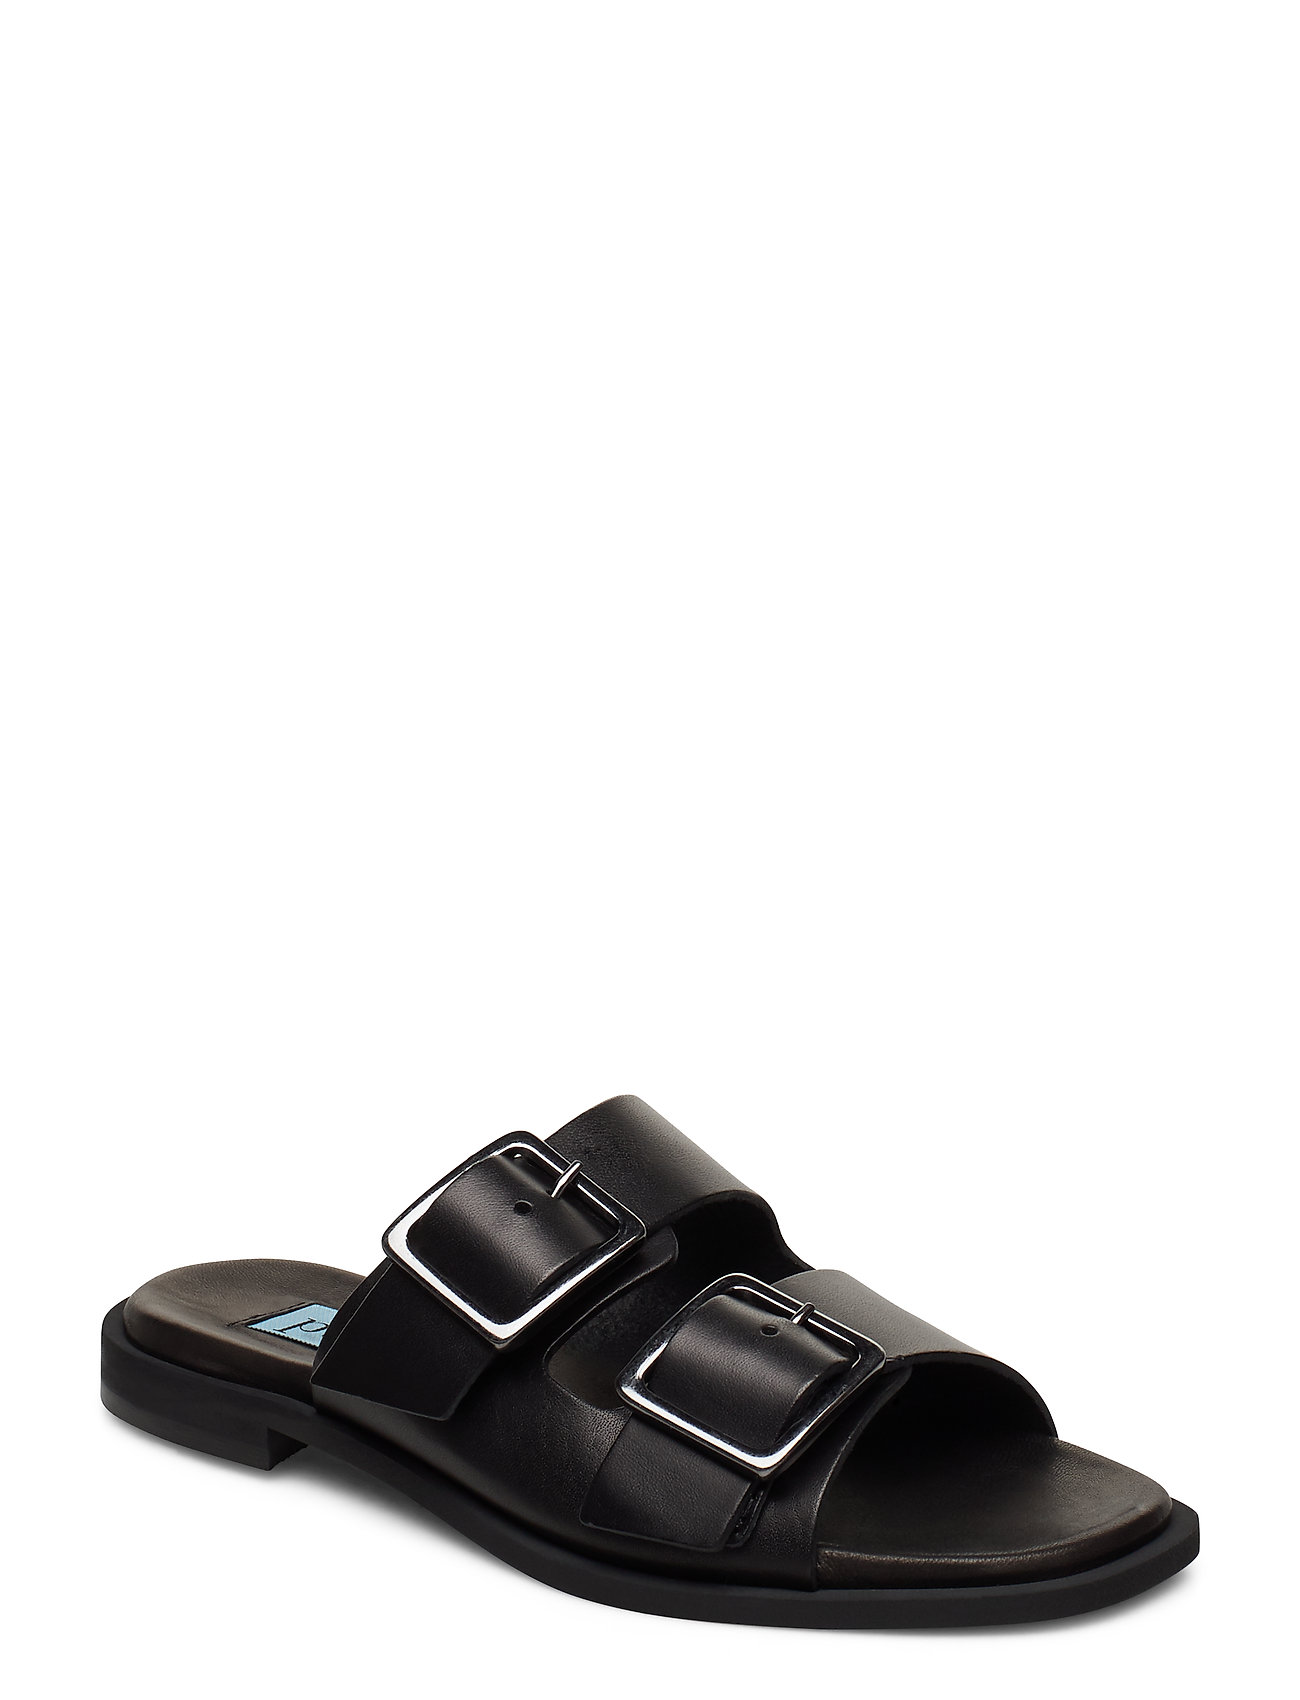 Image of Buckles Square Flat Shoes Summer Shoes Flat Sandals Sort Apair (3370075631)